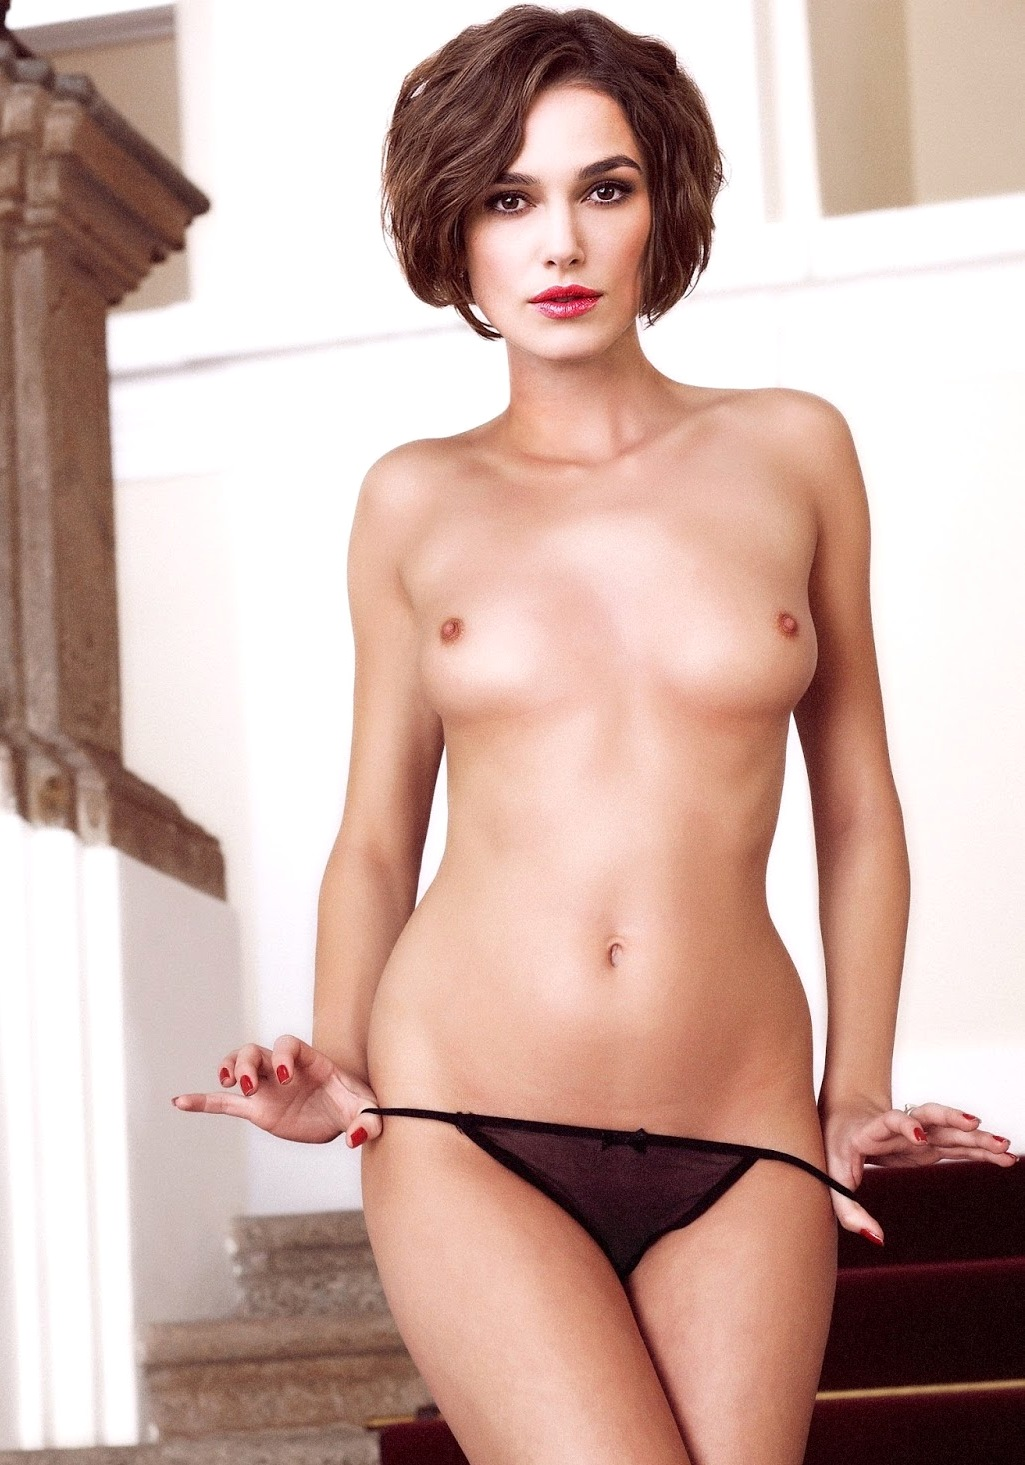 Keira knightley real naked, pornstar tattoo on her asshole